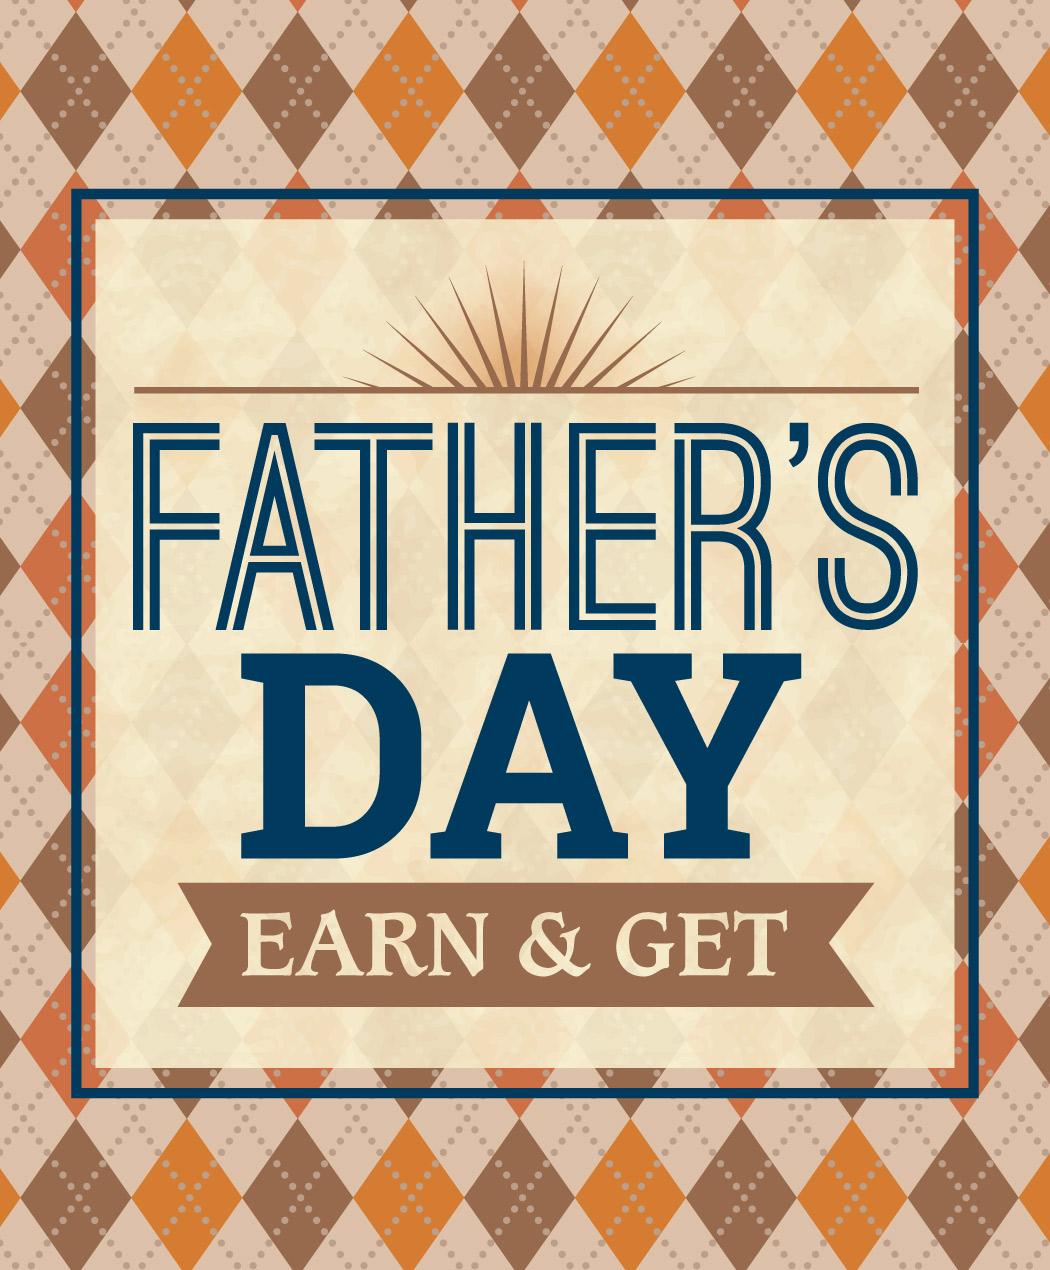 Father's Day Earn & Get